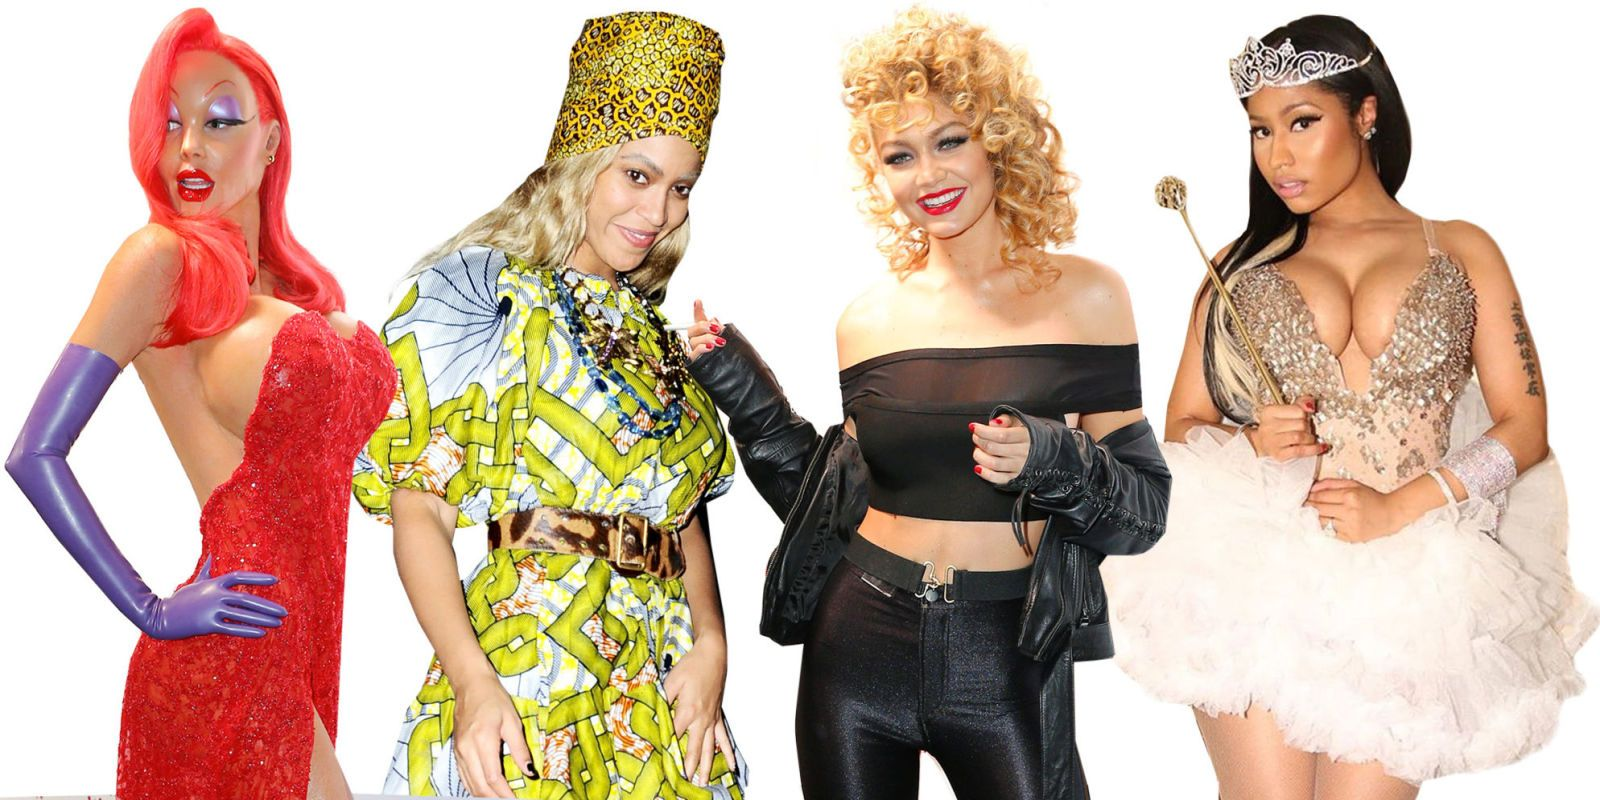 ... pulls out all the stops for itu0027s Halloween. From Beyoncéu0027s Storm to Channing Tatumu0027s Winnie the Pooh (!!) the costumes are creative and elaborate.  sc 1 st  Elle & Celebrity Halloween Costumes 2015 - Celebrity Costume Photos